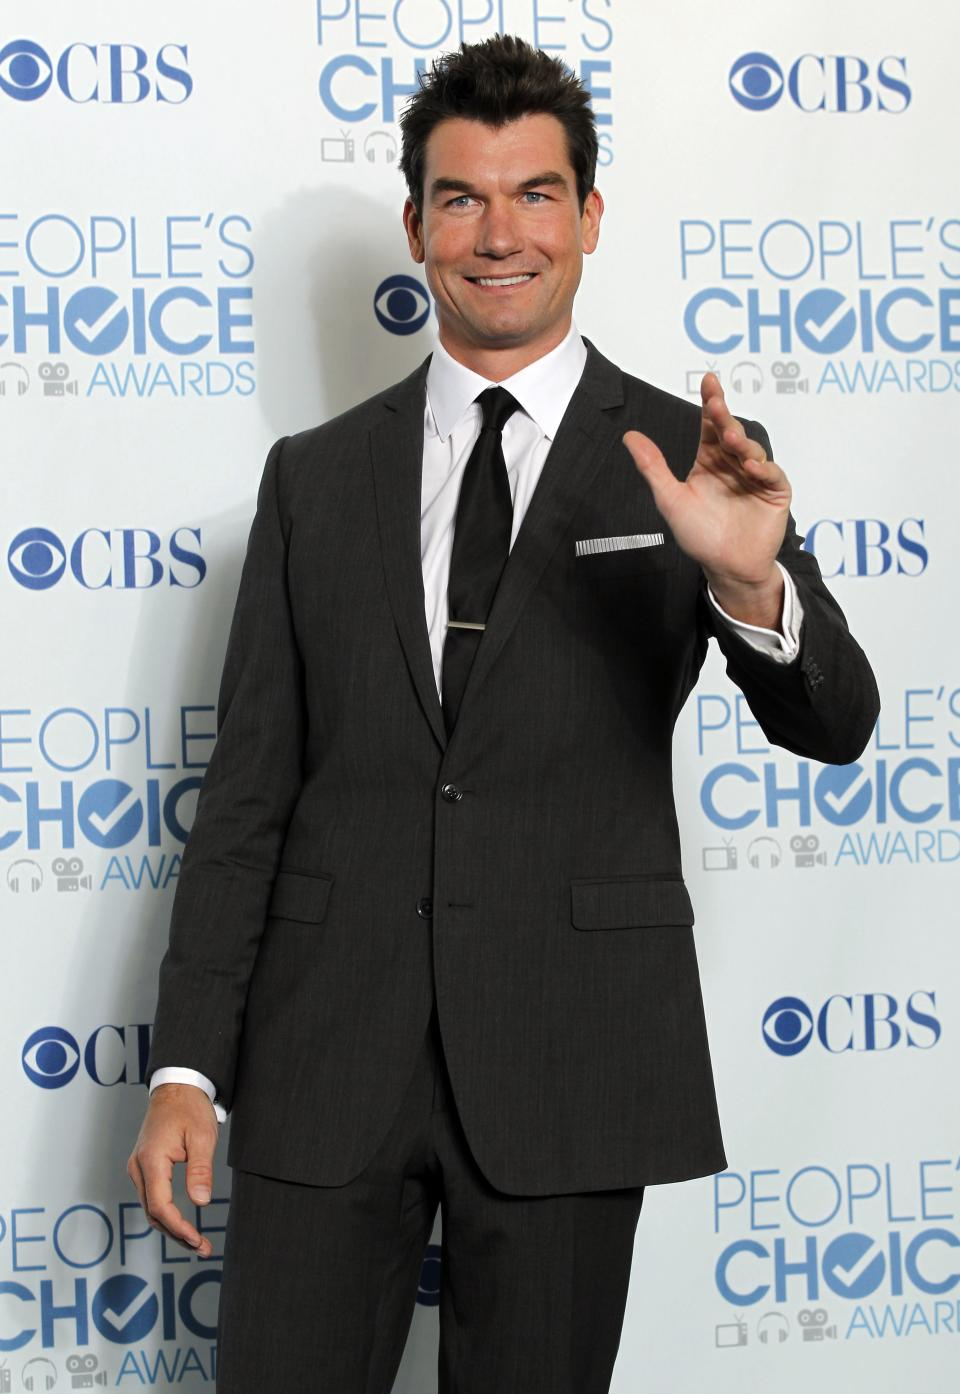 Jerry O'Connell poses for a photo backstage at the People's Choice Awards on Wednesday, Jan. 5, 2011, in Los Angeles. (AP Photo/Matt Sayles)